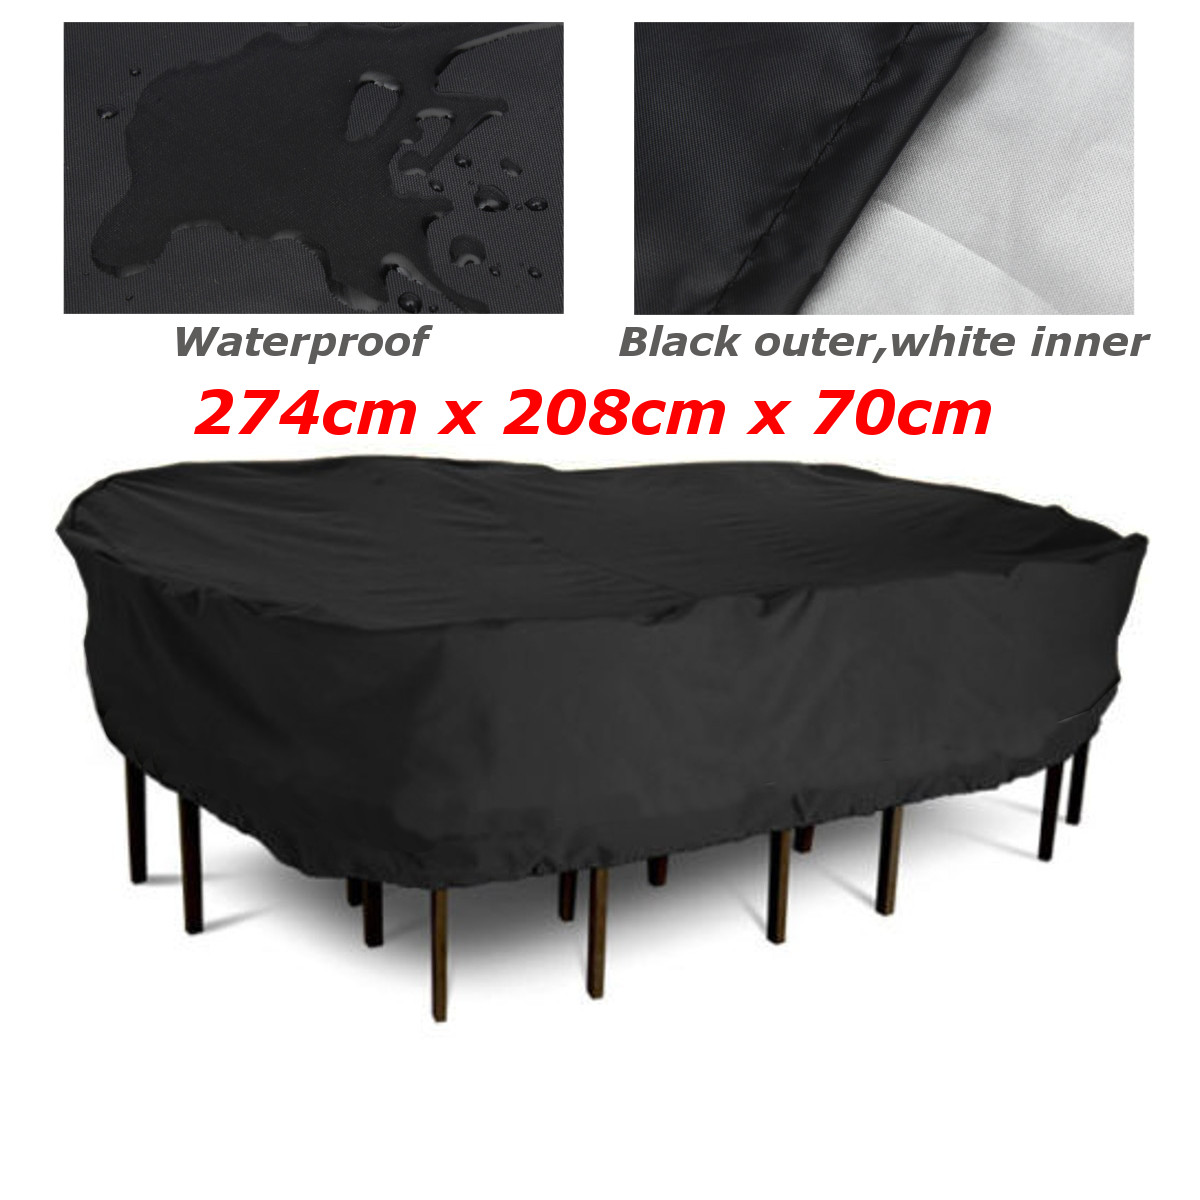 Polyester Patio Garden Outdoor Furniture Cover Waterproof Rectangular Table  Chair Protective Cover Table Cloth 274x208x70cm. Popular Covers Garden Furniture Buy Cheap Covers Garden Furniture